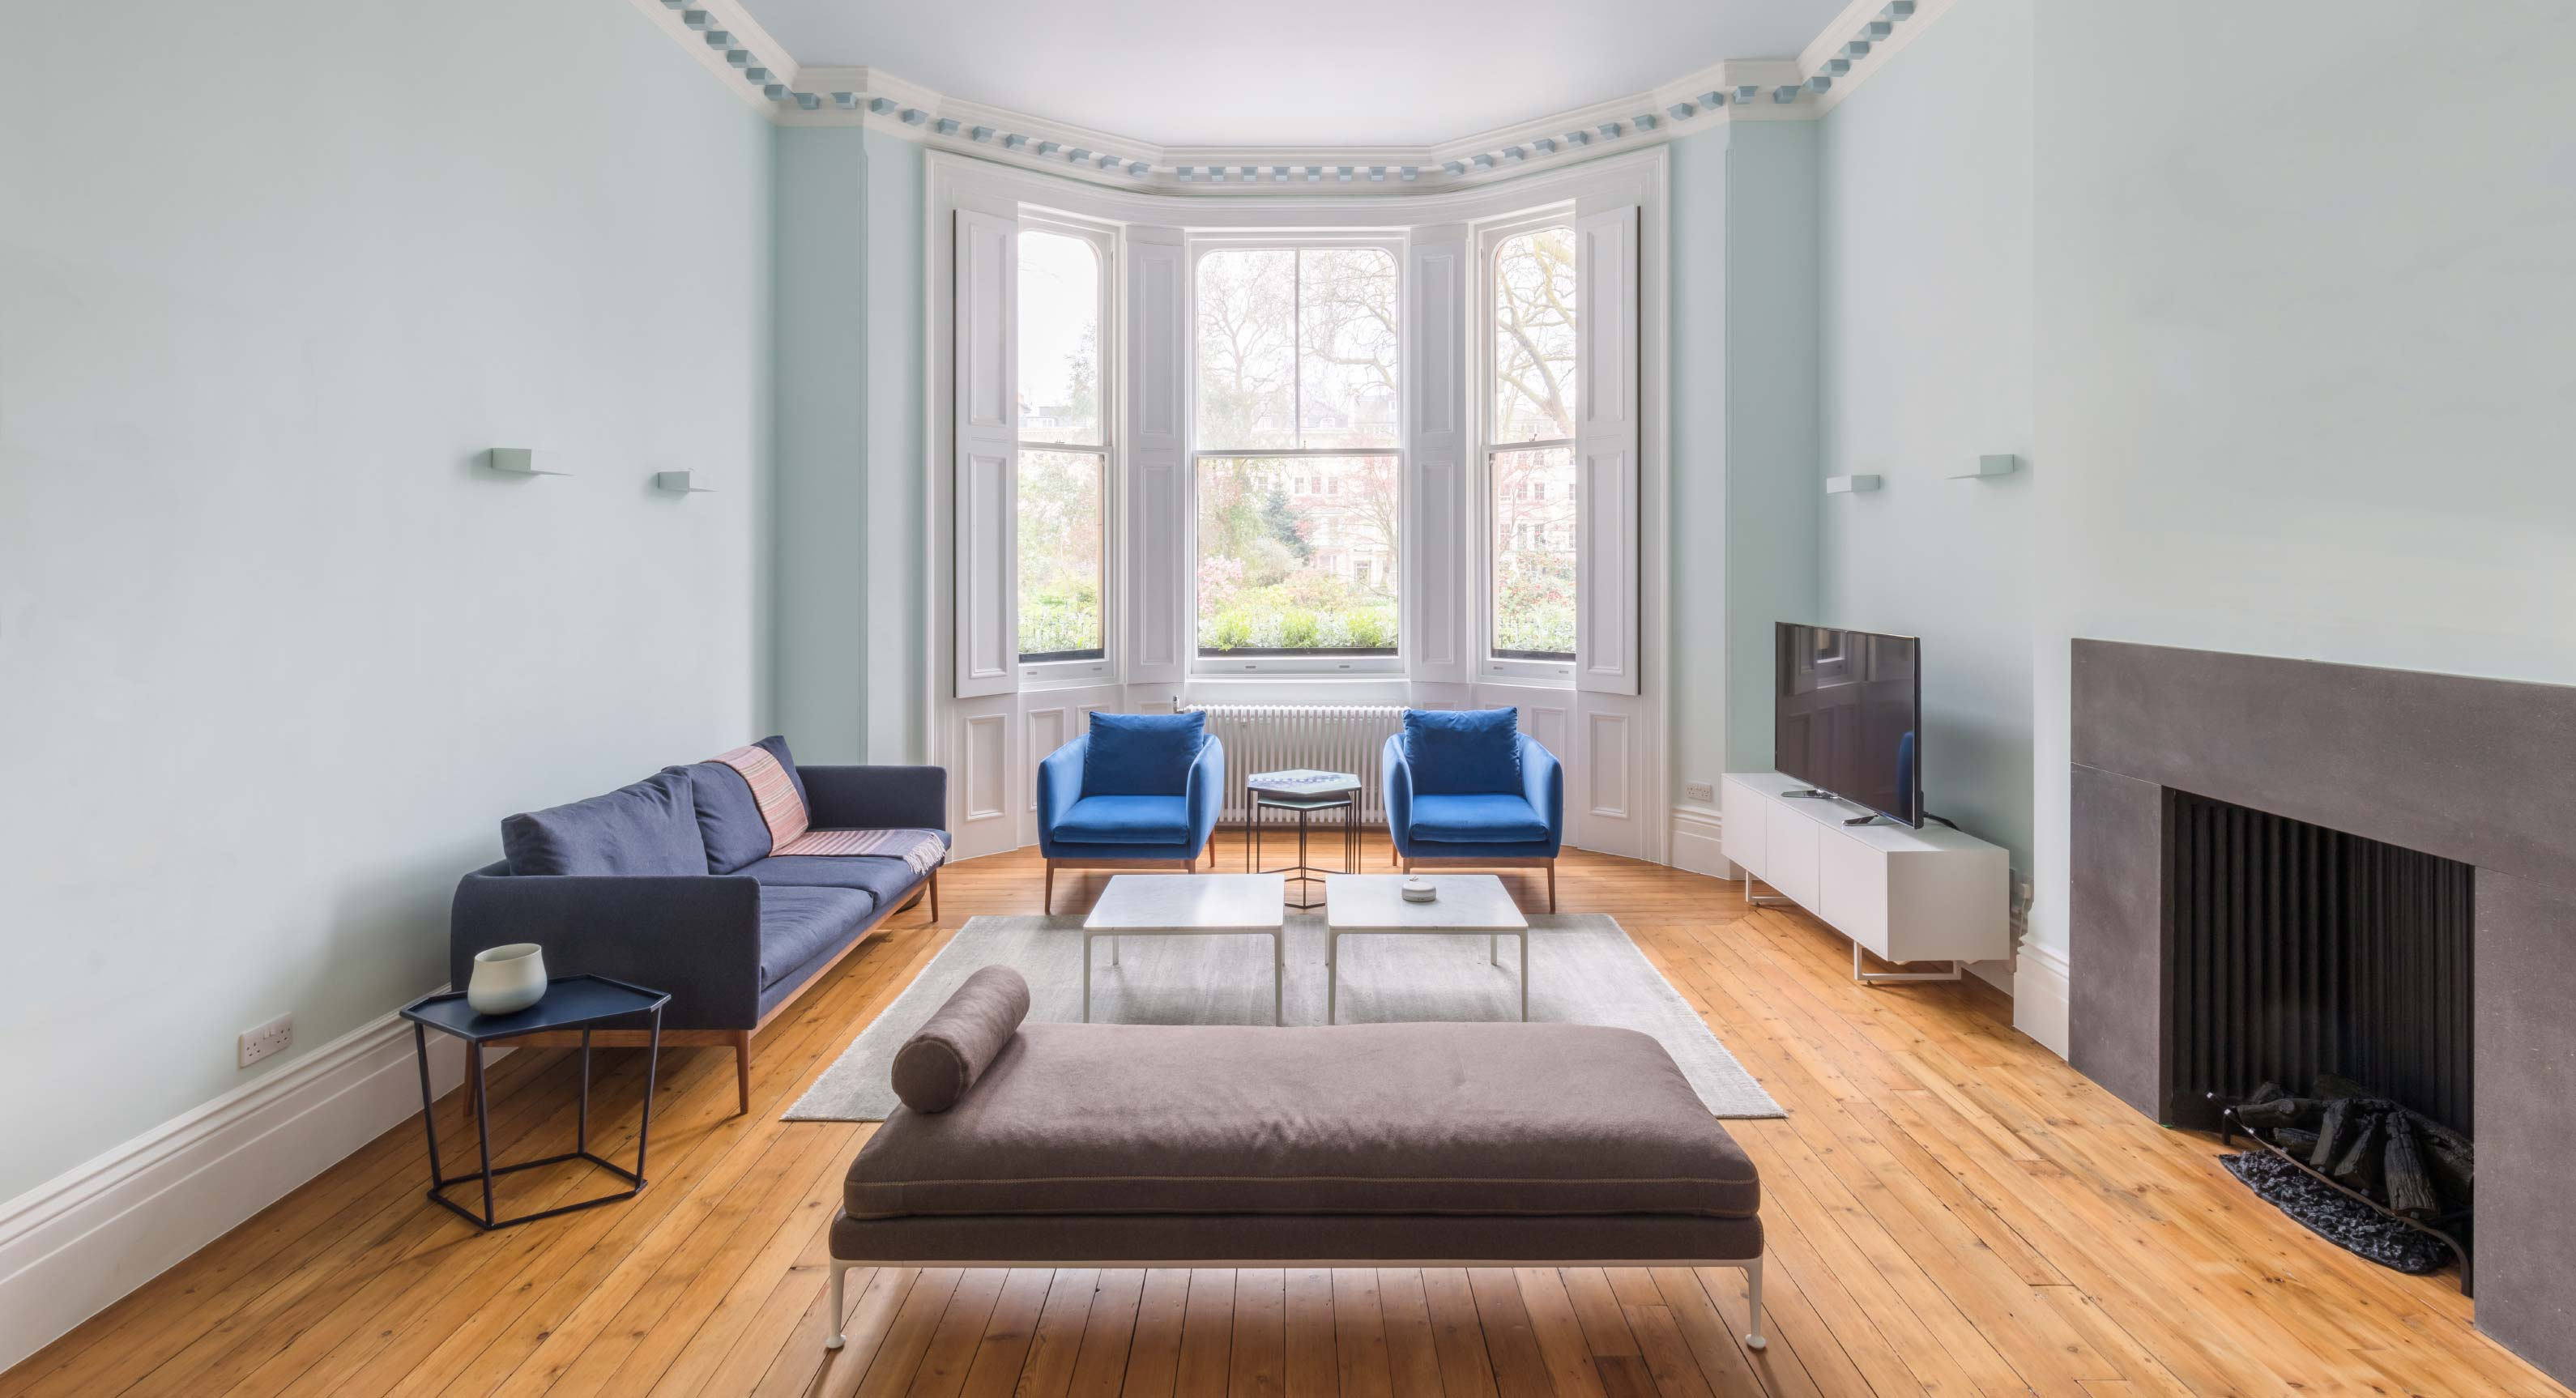 Lydia Xynogala Gives This Victorian London House A Full Minimalist Makeover